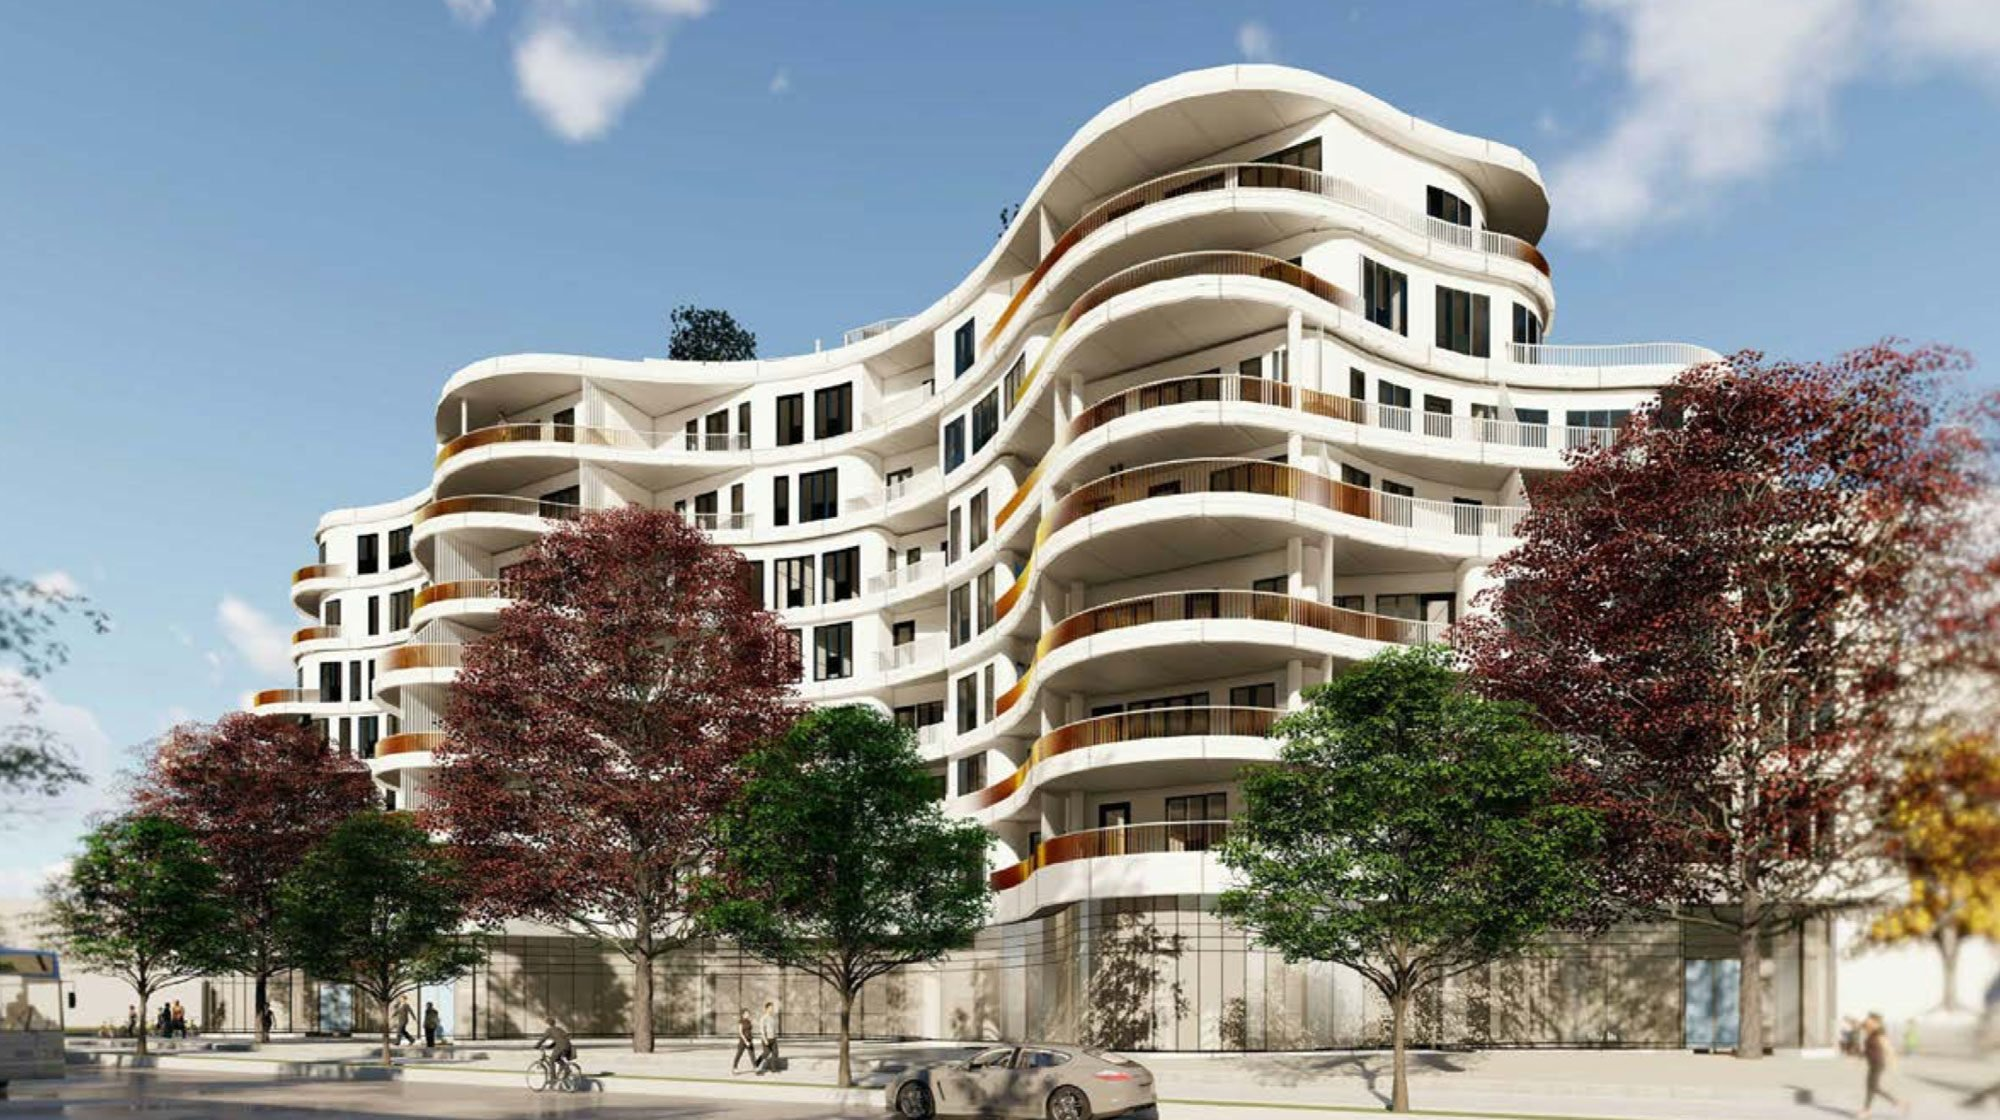 Holborn Group moves ahead with market housing at Little Mountain site